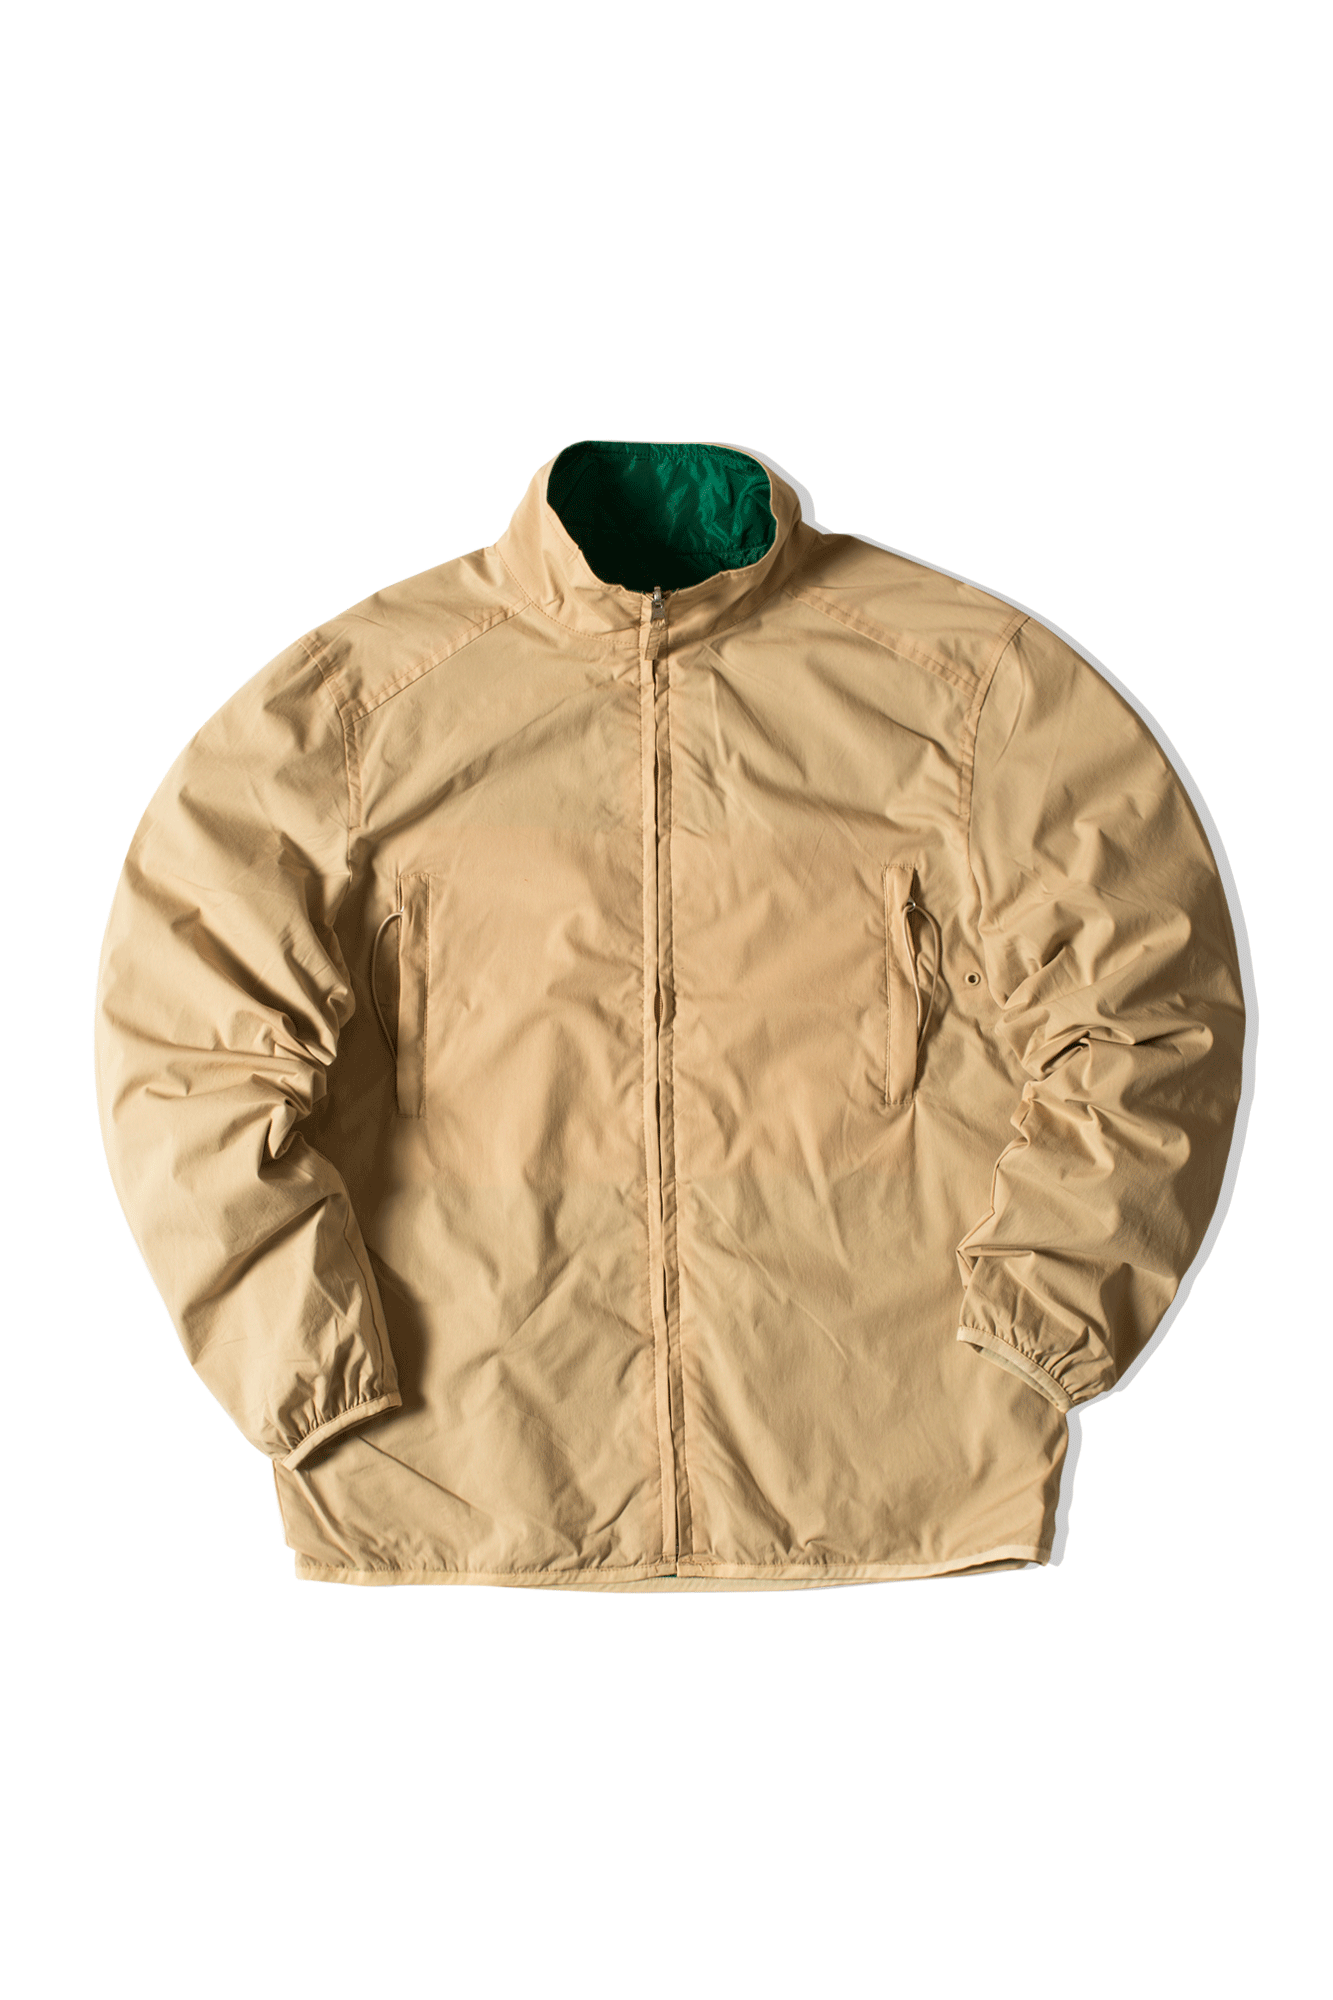 Pop Trading Company Jackets Plada Jacket Brown SS2005-005#000#KHGRN#M - One Block Down